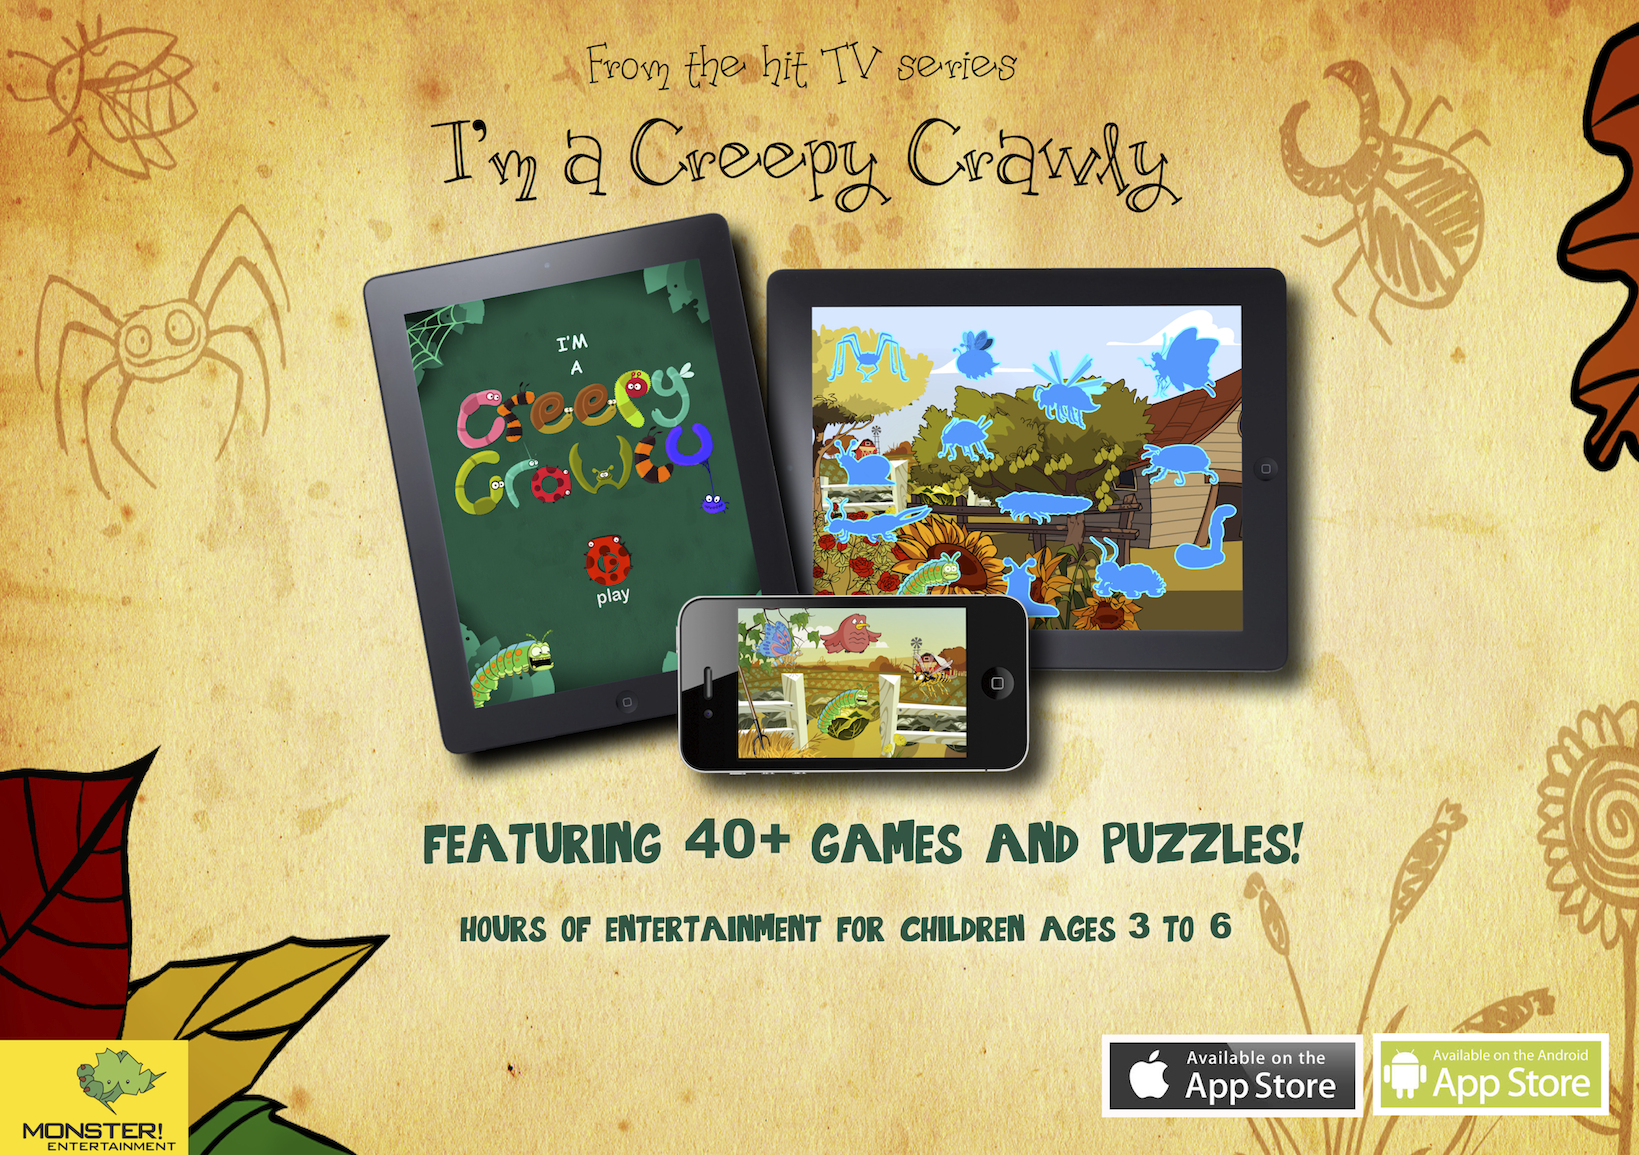 I'm a Creepy Crawly' is a fun and exciting app aimed at